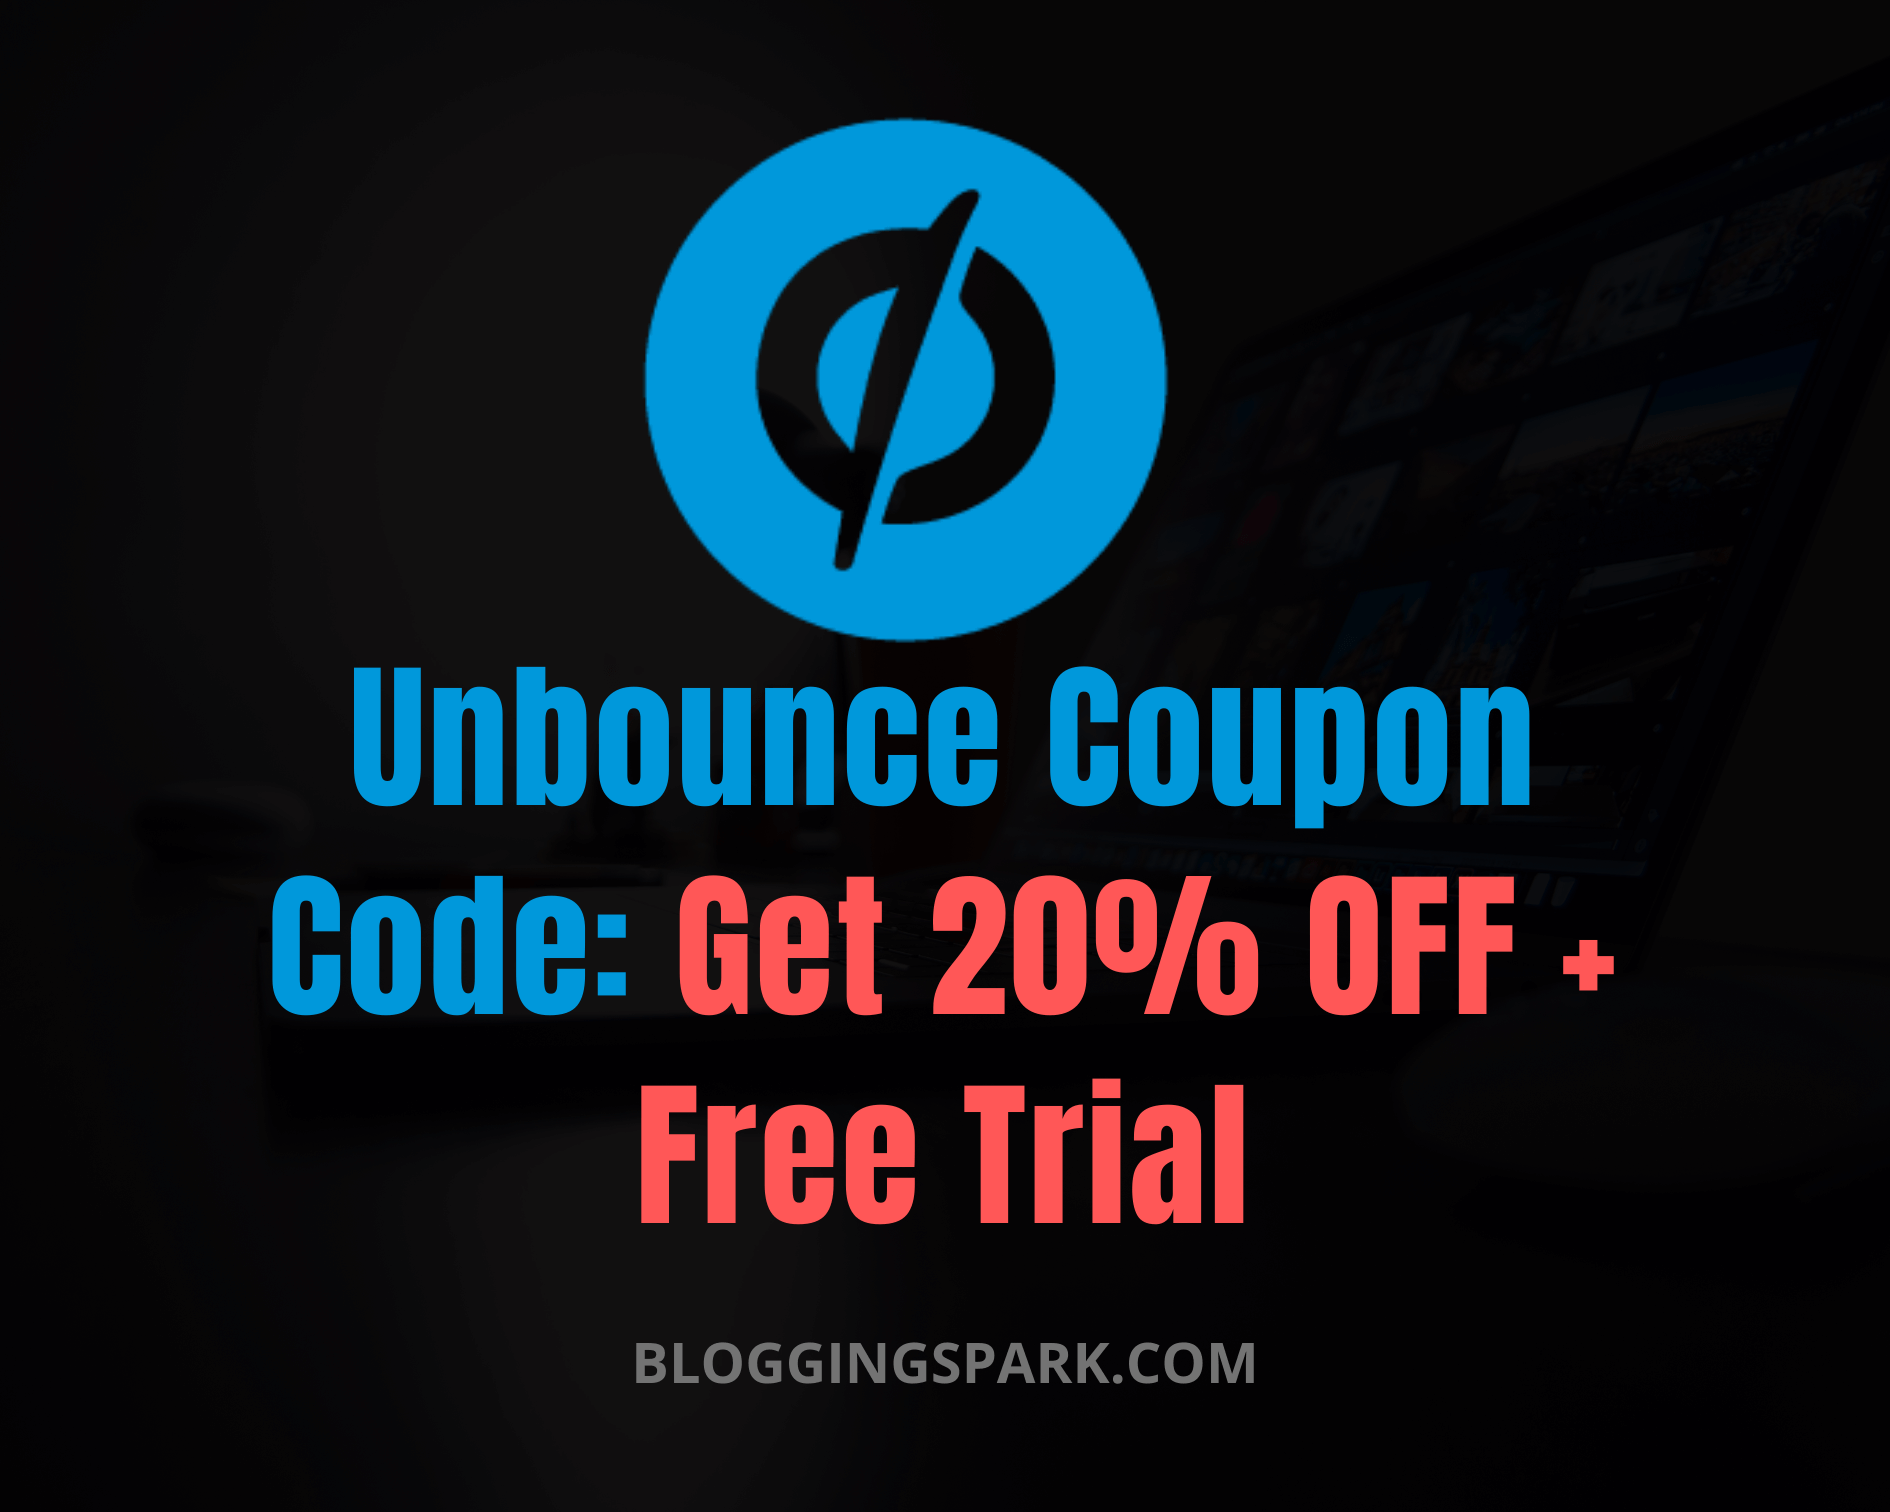 Unbounce Coupon Code 2021: Get 20% Off + 14 Days Free Trial